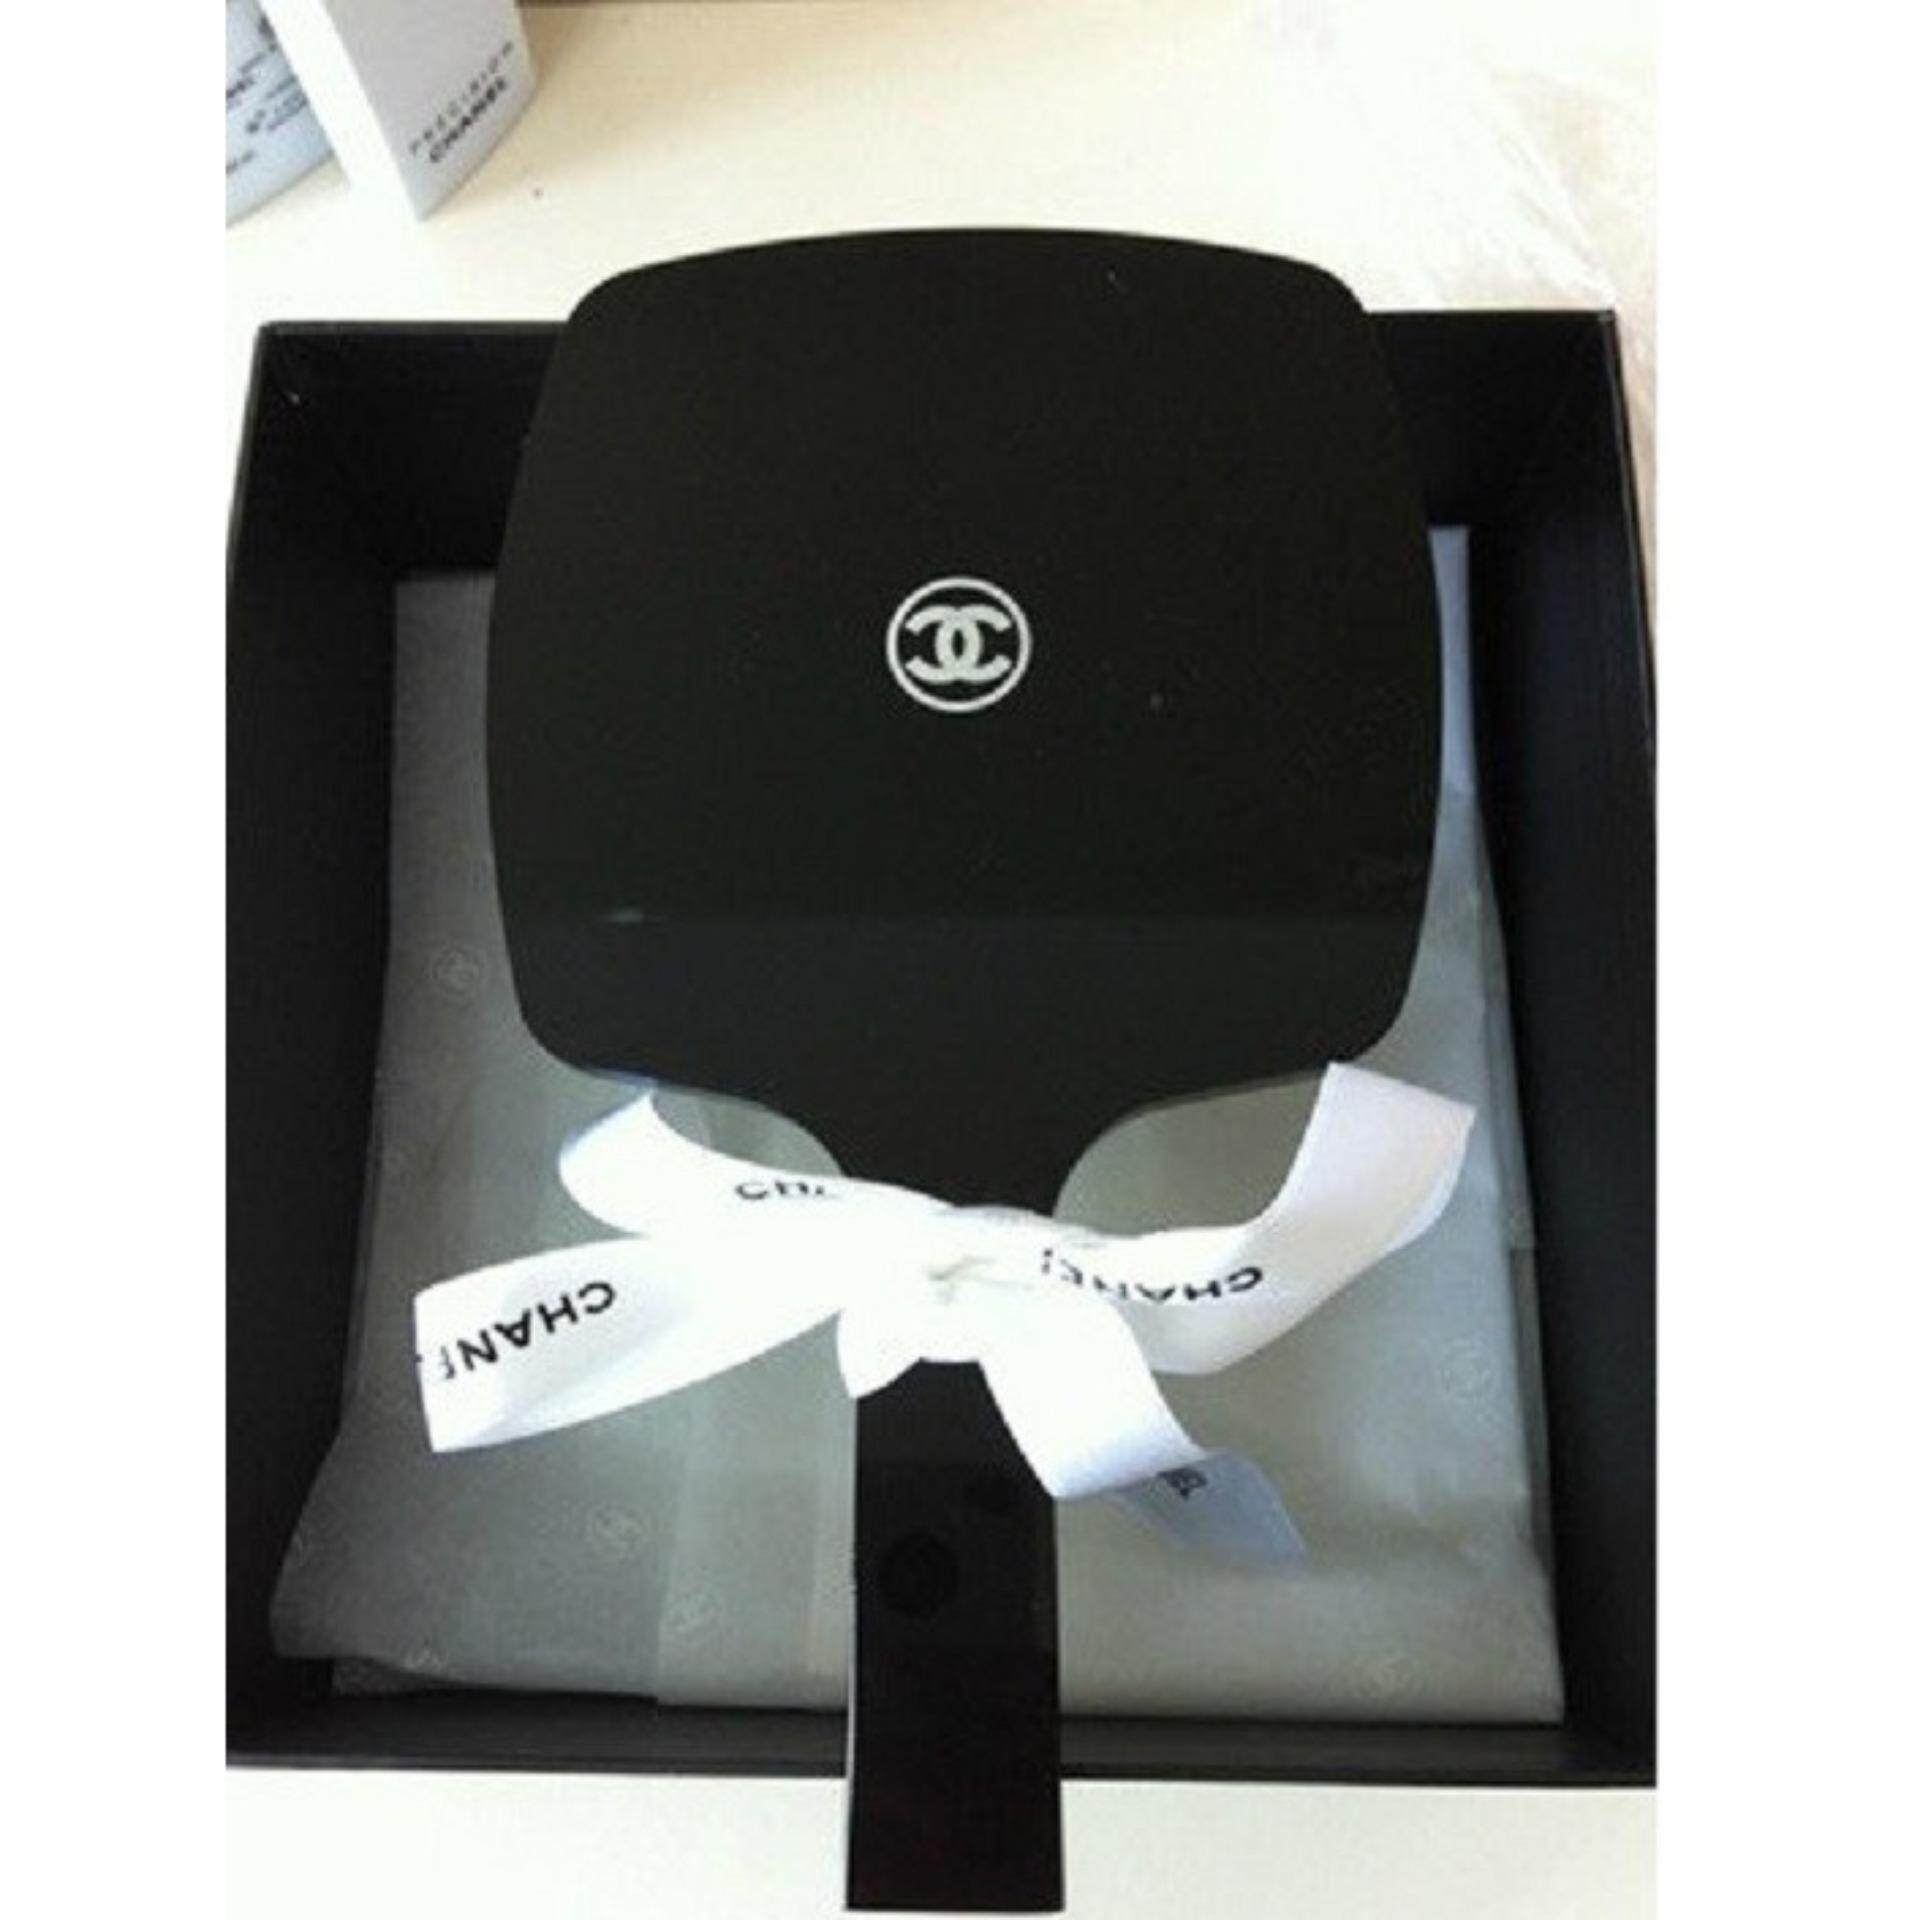 Authentic Chanel VIP GIFT Vanity Handheld Mirror - Very Rare (Clearance Sale)